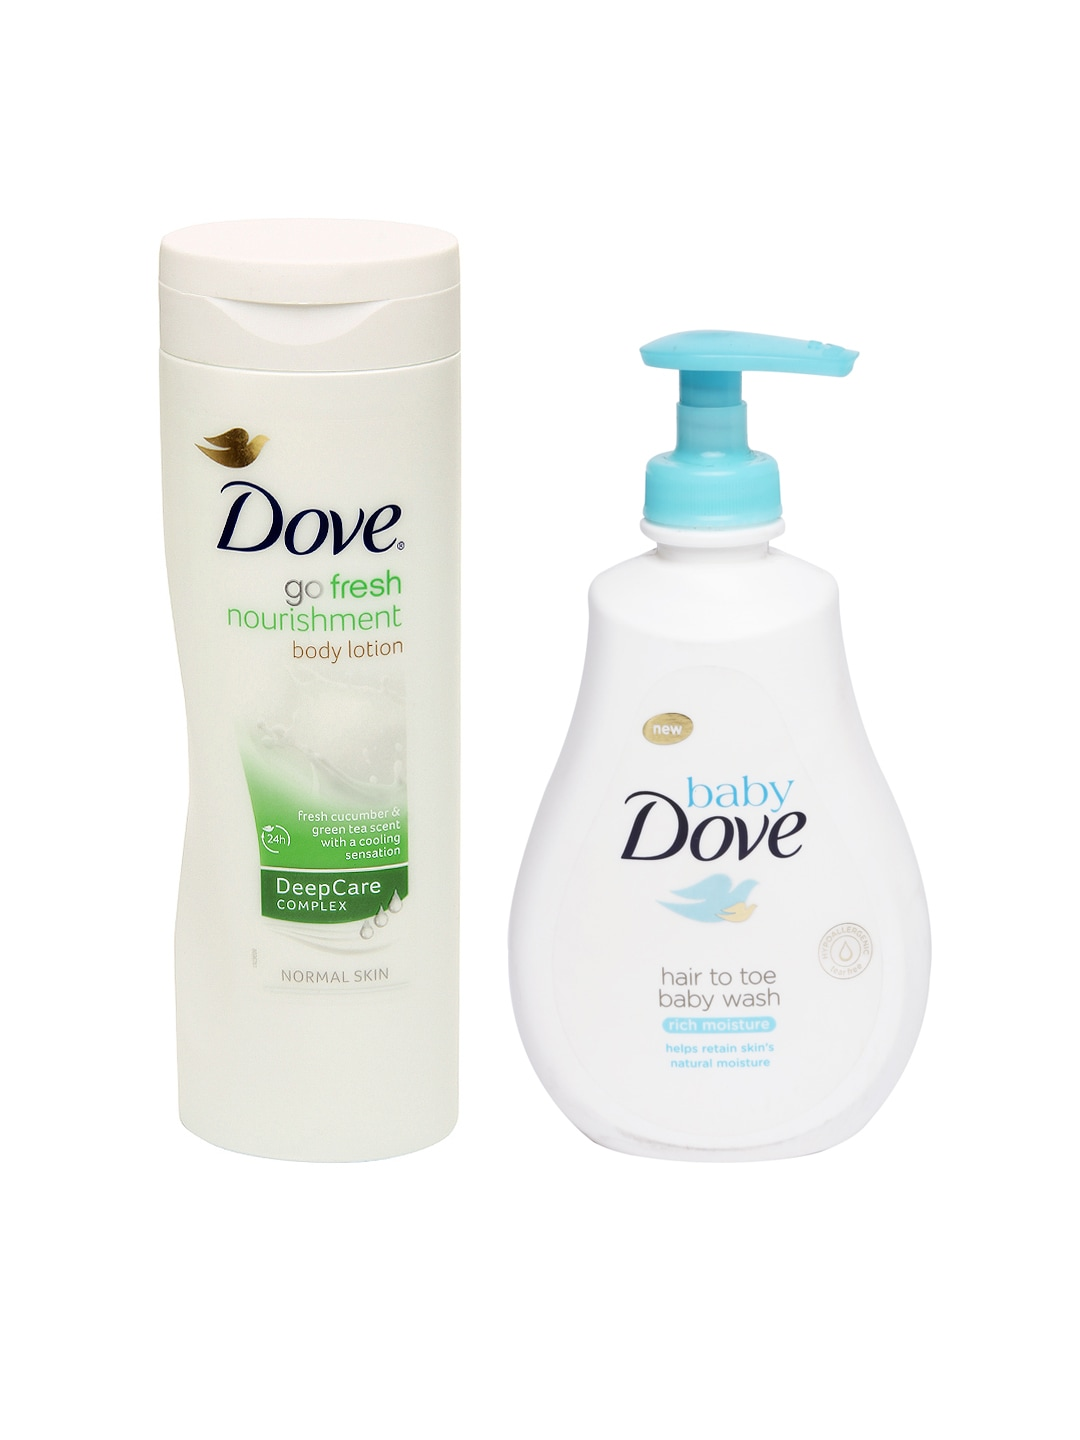 Dove Hair To Toe Baby Wash & Go Fresh Nourishment Body Lotion image